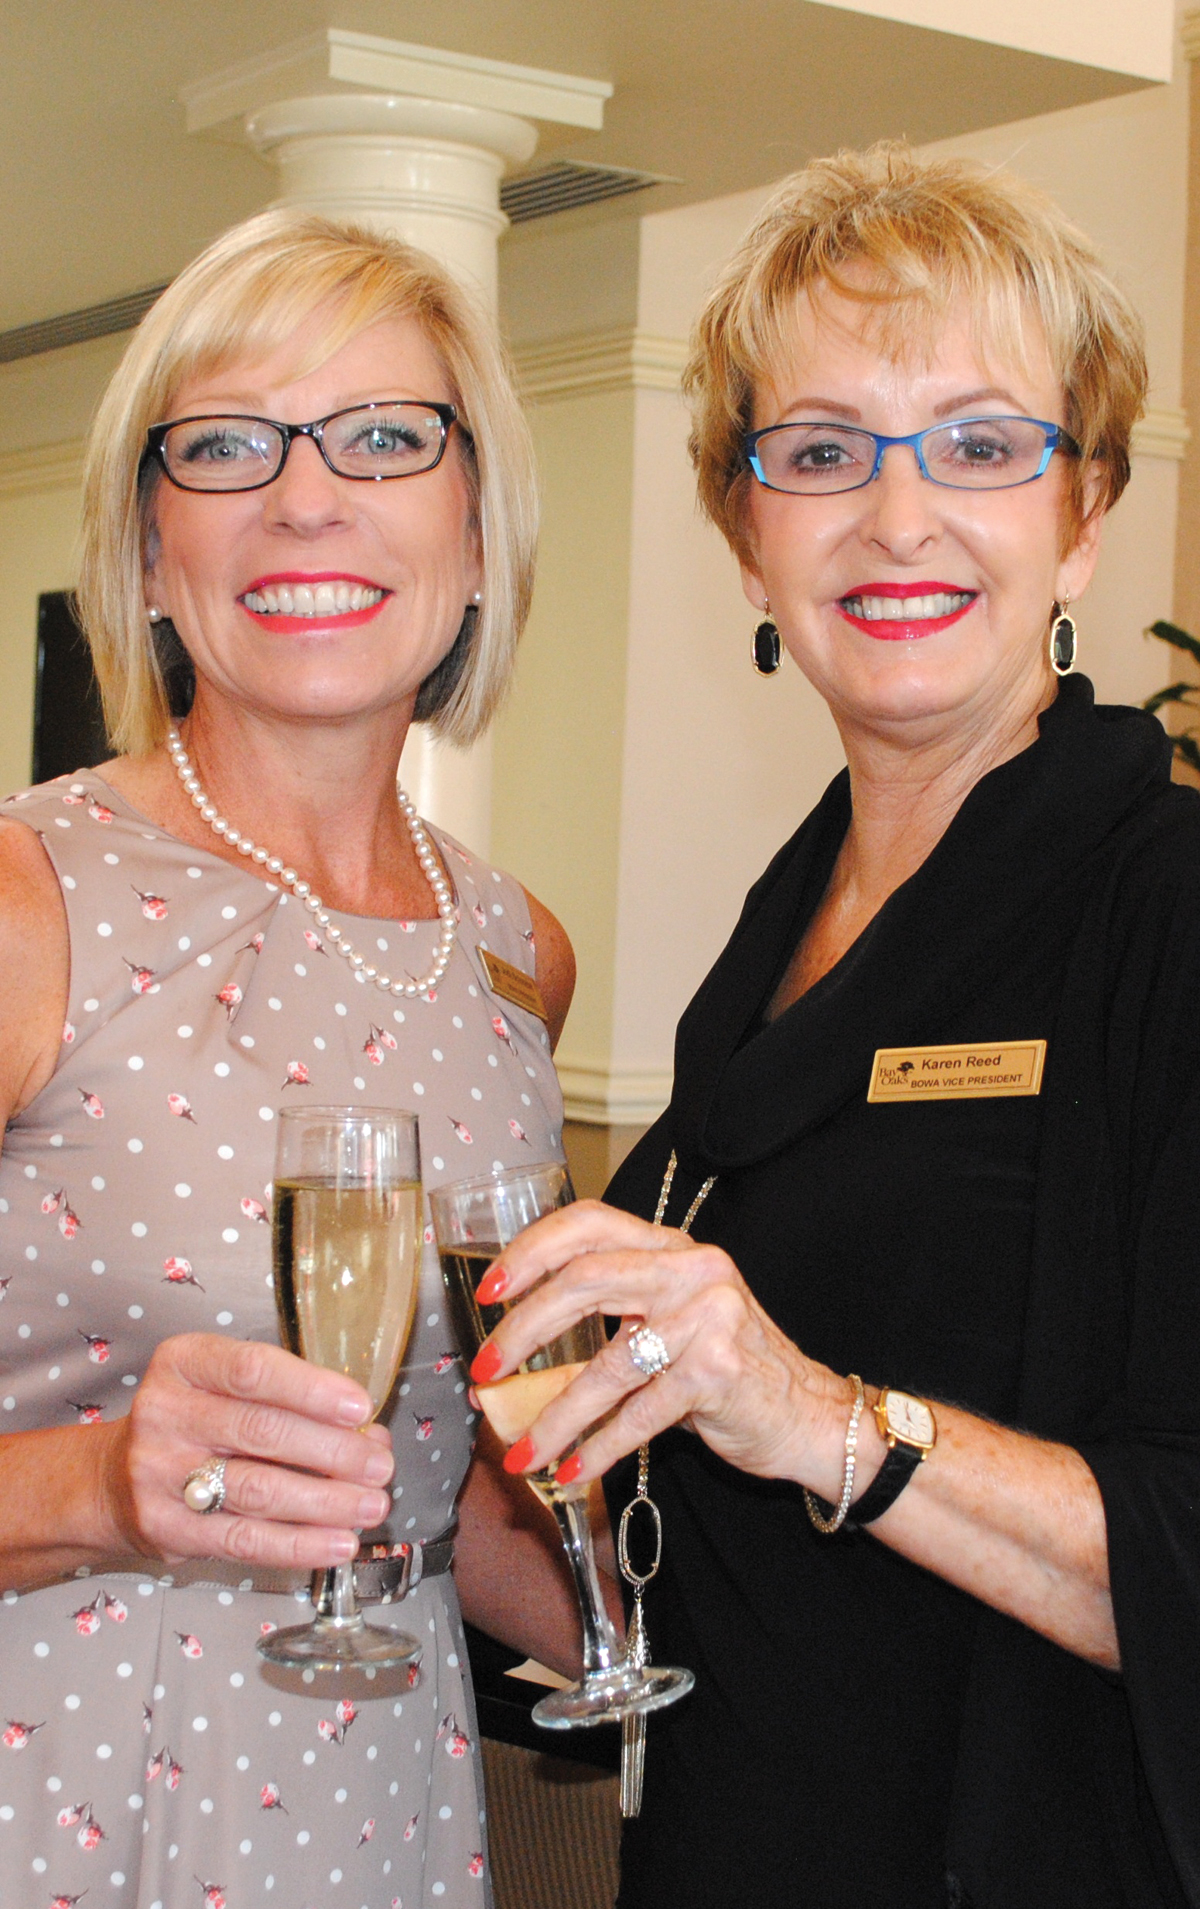 Fashion Show Chairman Karen Reed, right, receives congratulations from Bay Area Women's Association President Jodie Schnabel on another successful event.